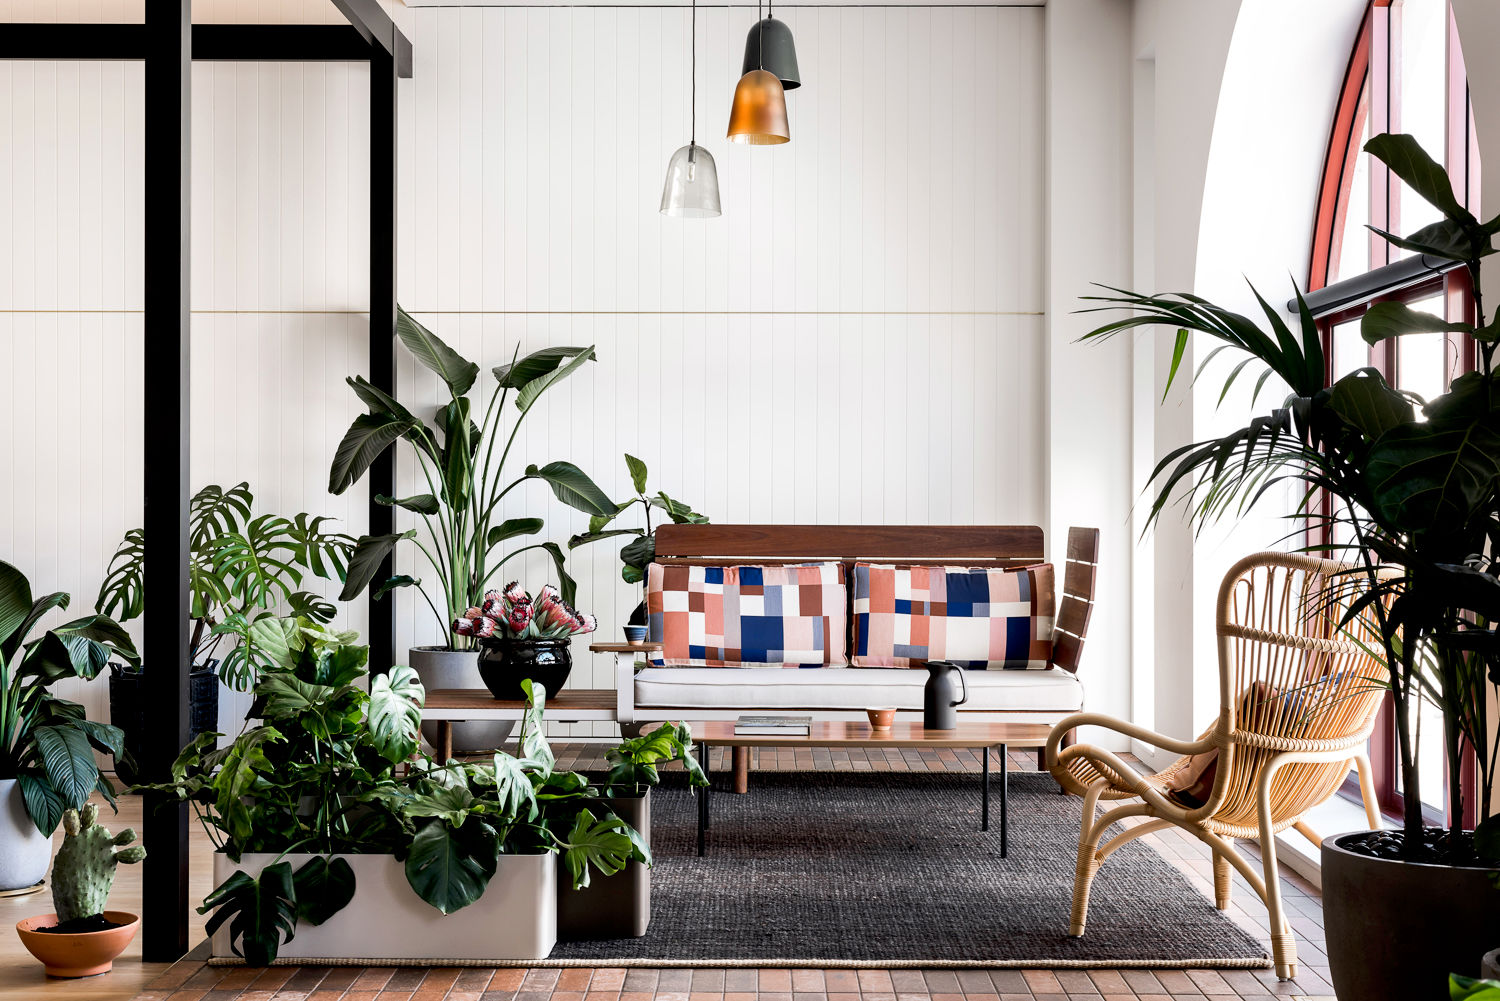 Stylecraft Perth Showroom, Designed By Woods Bagot. Photographer: Dion  Robeson